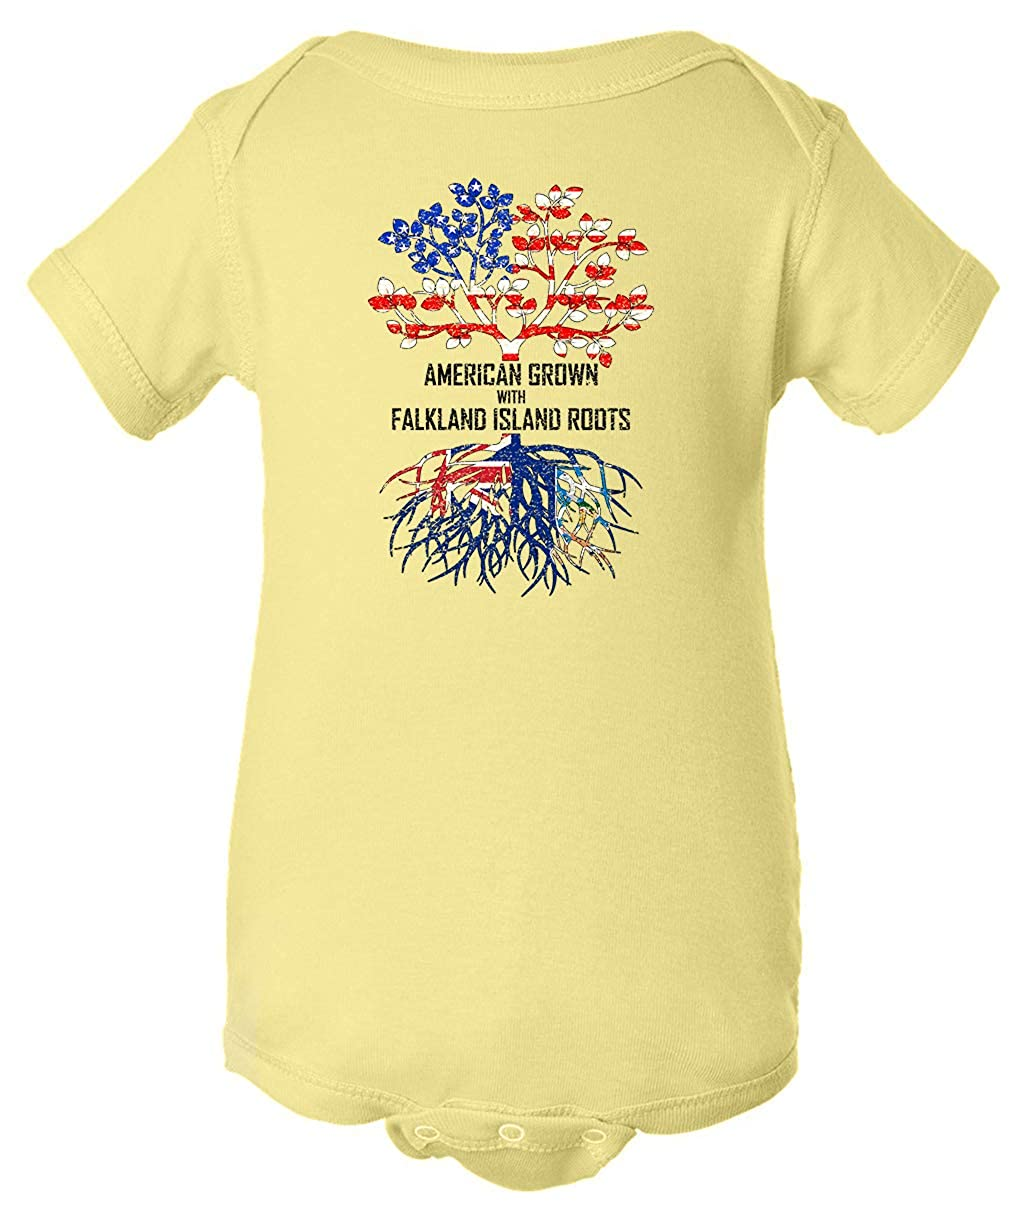 Tenacitee Babys American Grown with Falkland Island Roots Shirt